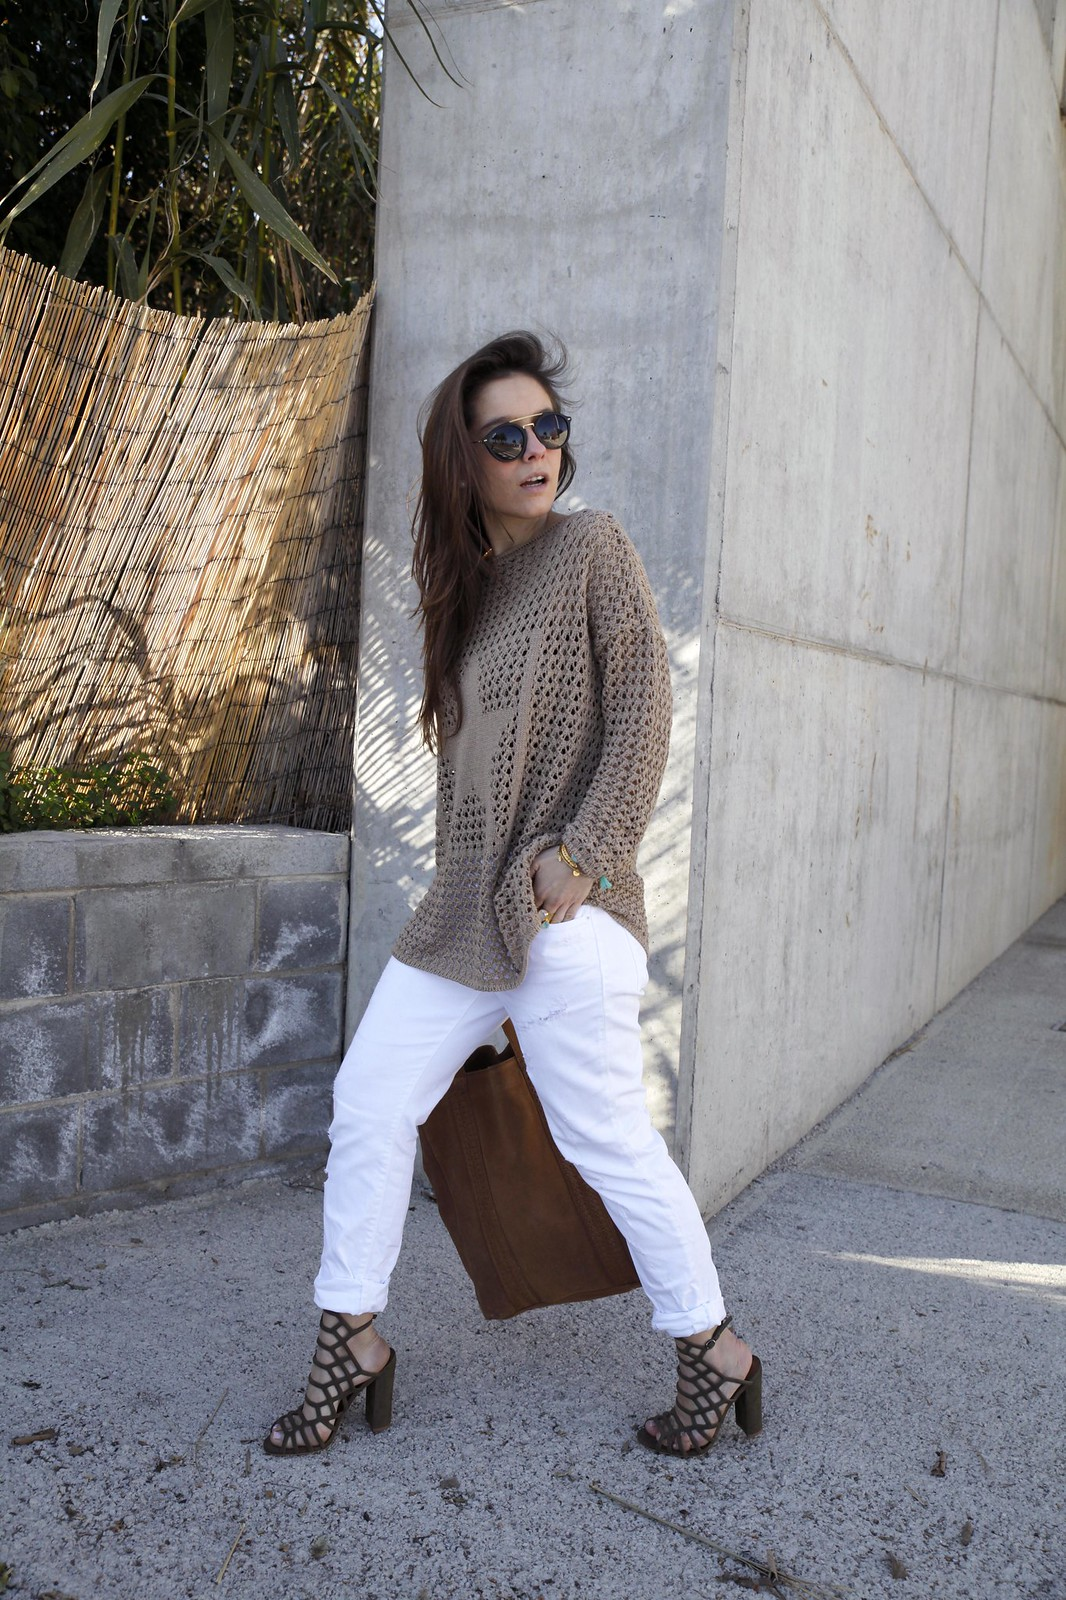 014_SPRING_NEUTRAL_OUTFIT_STREET_STYLE_FASHION_BLOGGER_INFLUENCER_BARCELONA_THEGUESTGIRL